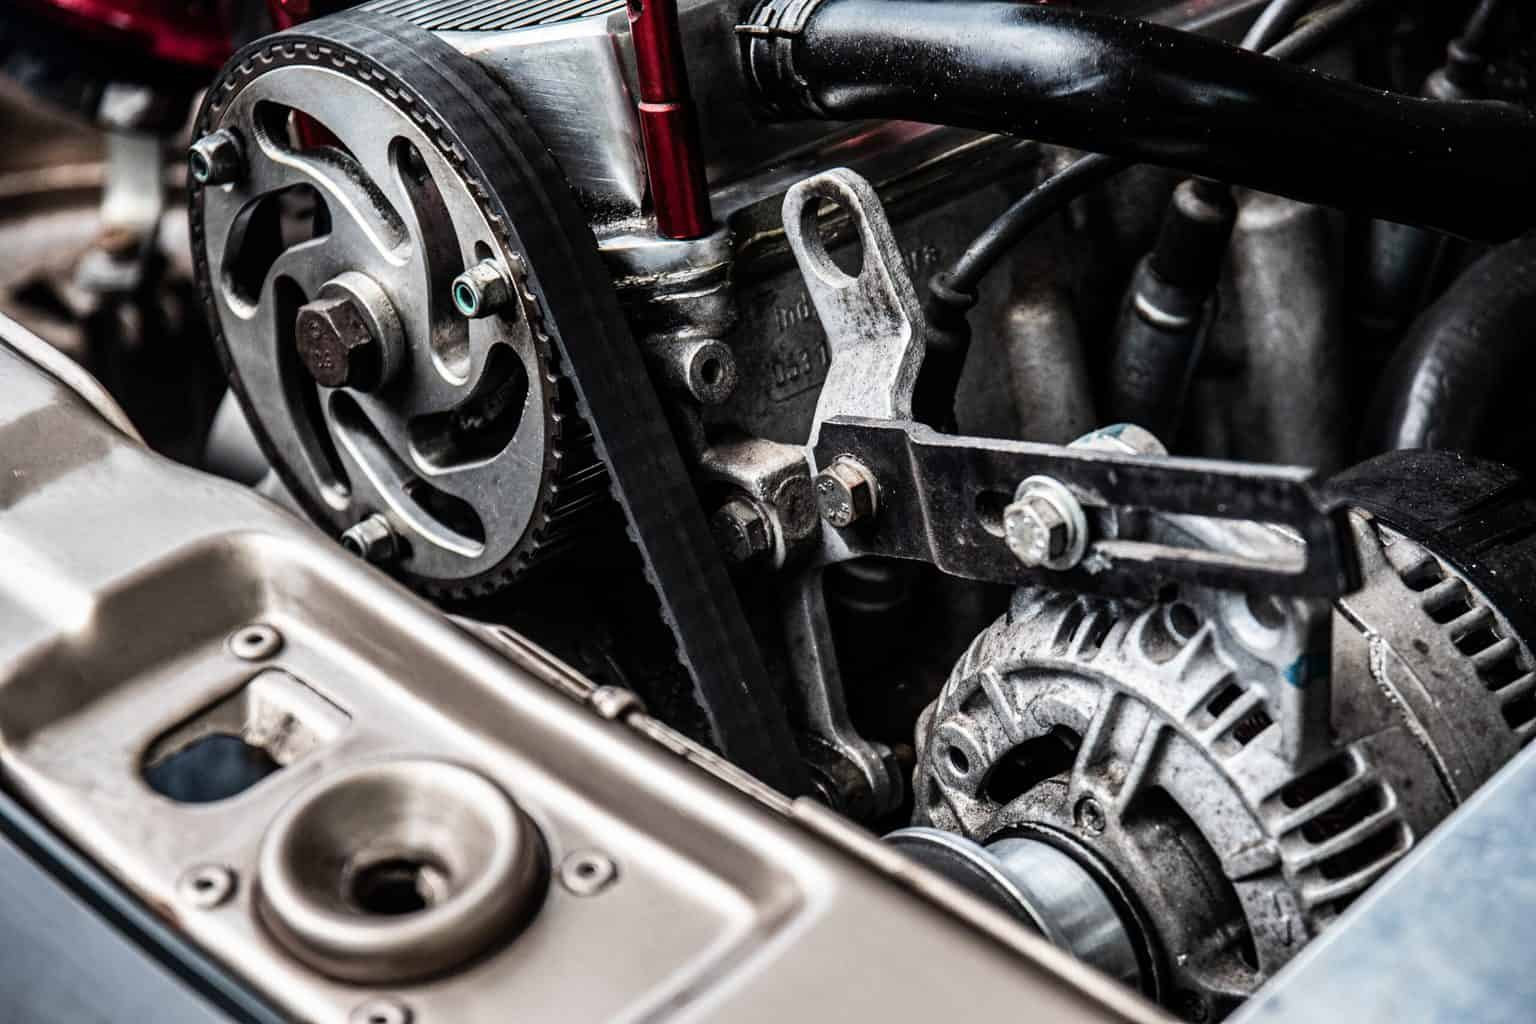 A shot of a car engine with several racks